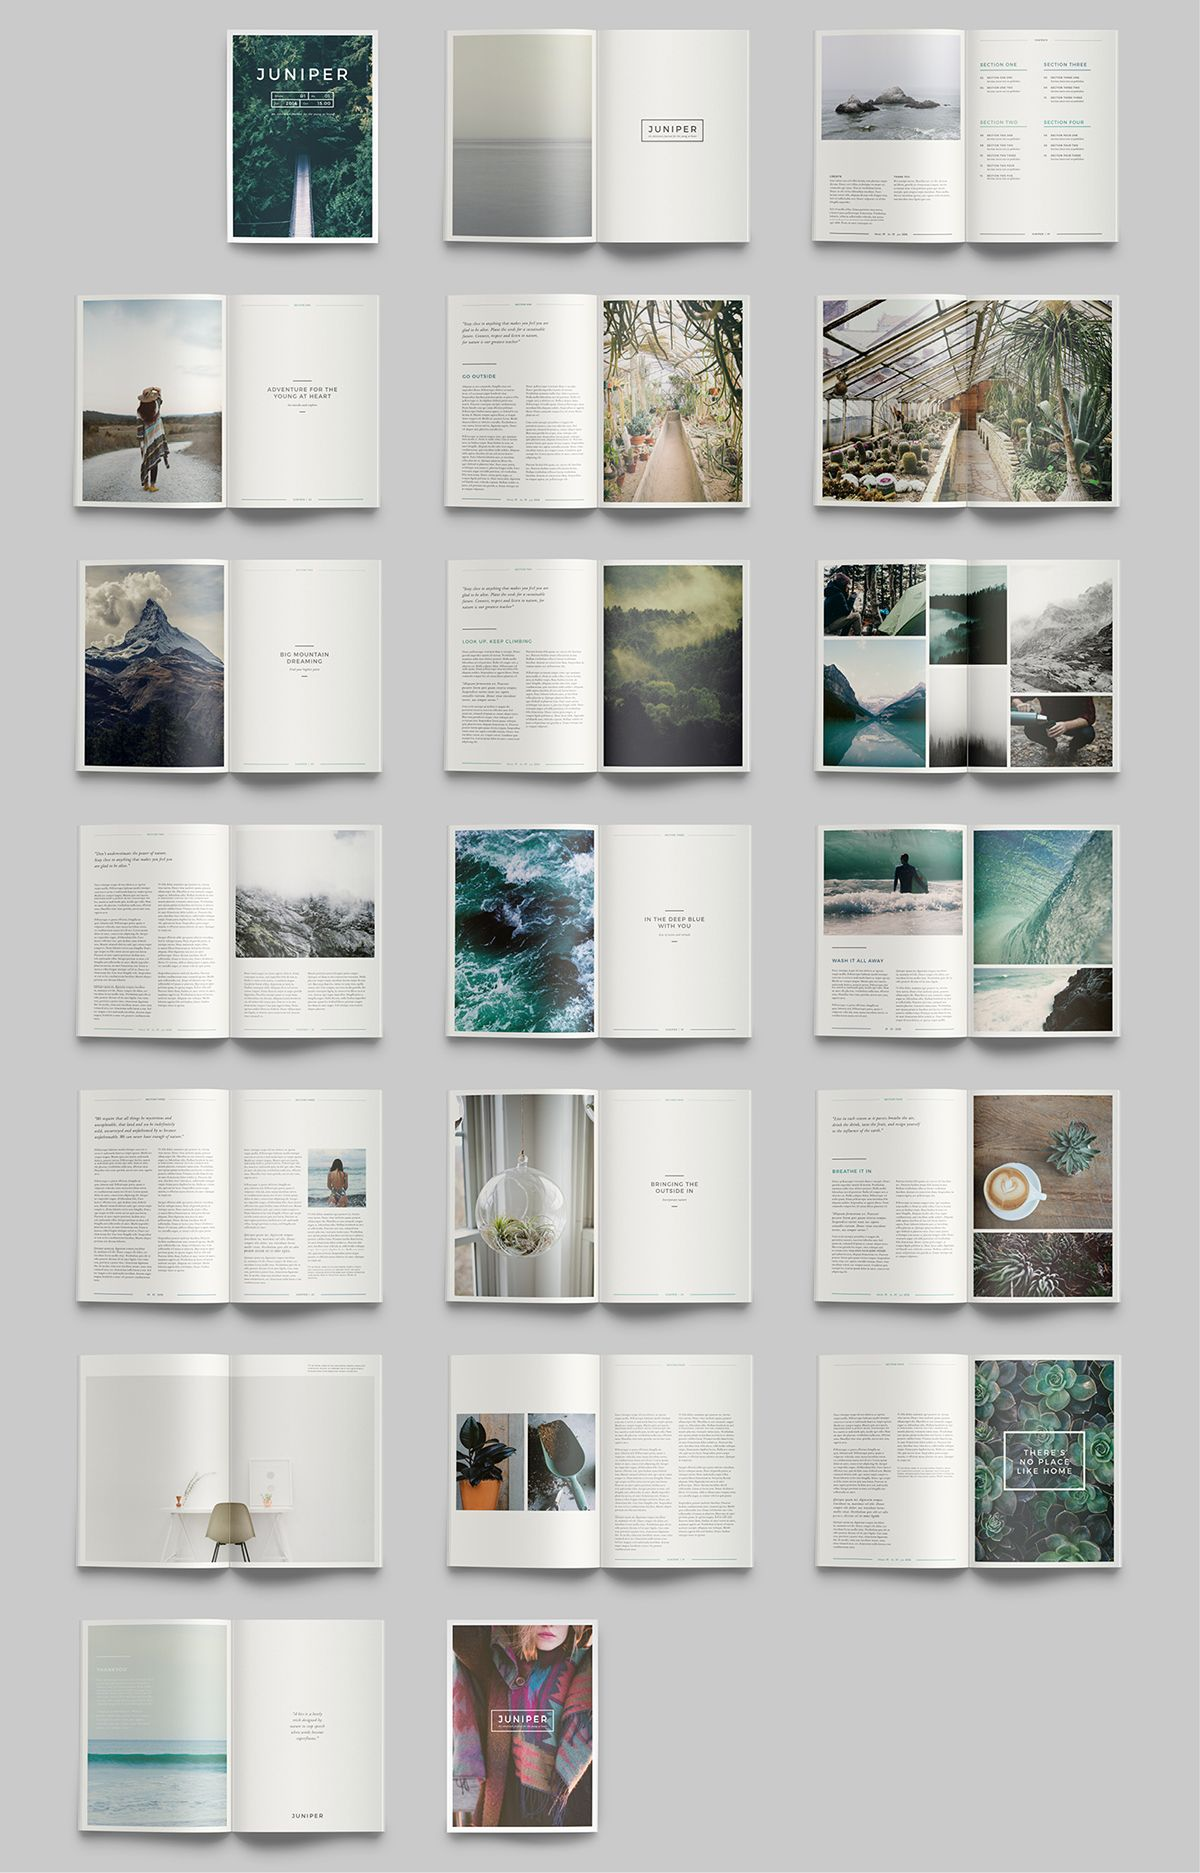 A Design Publication For Lovers Of All Things: J U N I P E R Magazine / Portfolio On Behance